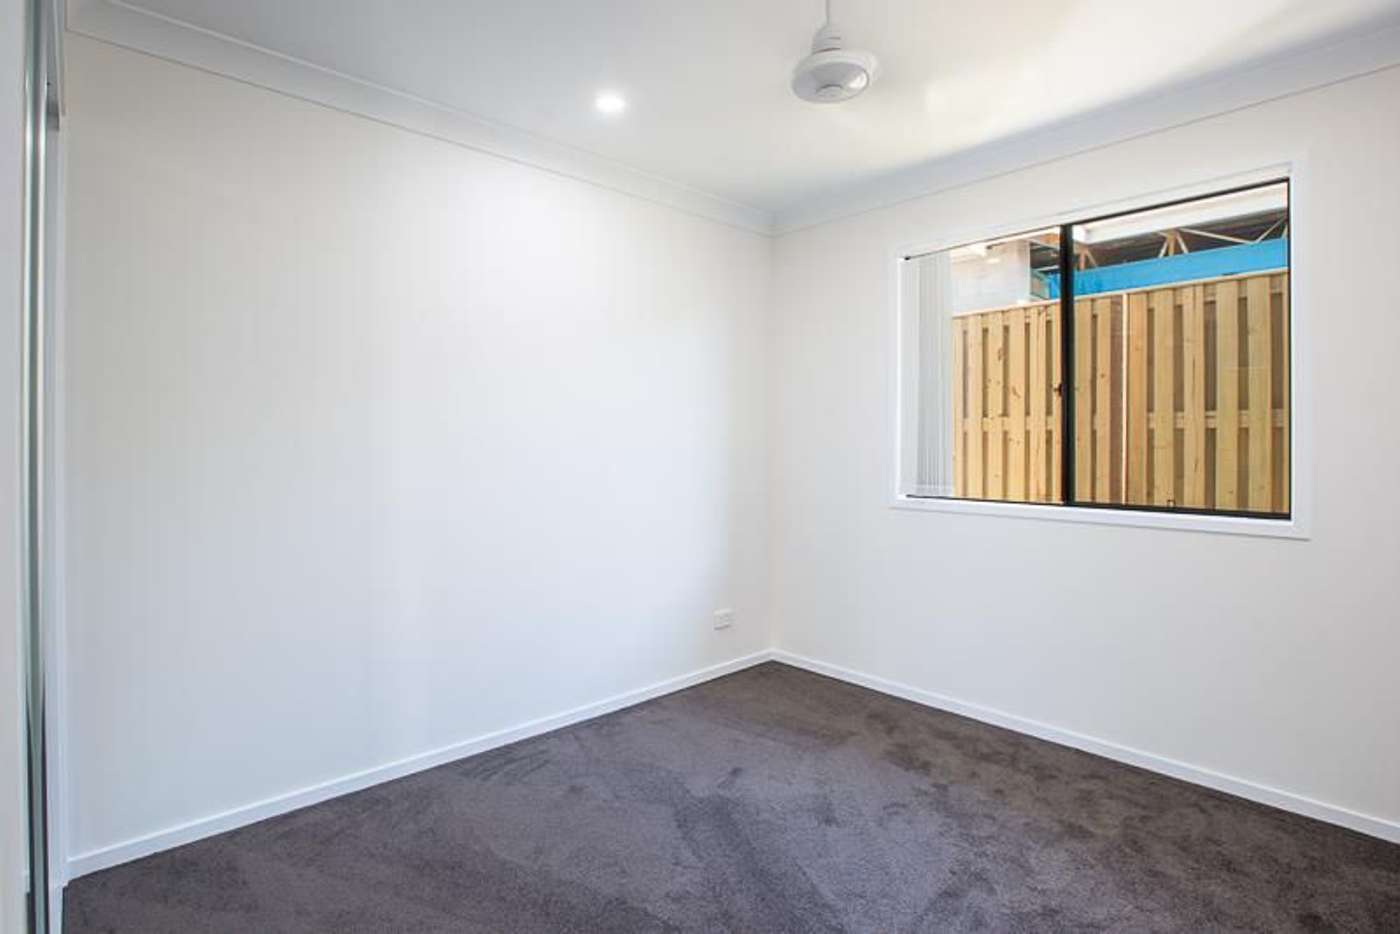 Sixth view of Homely house listing, 63 The Heights Boulevard, Pimpama QLD 4209